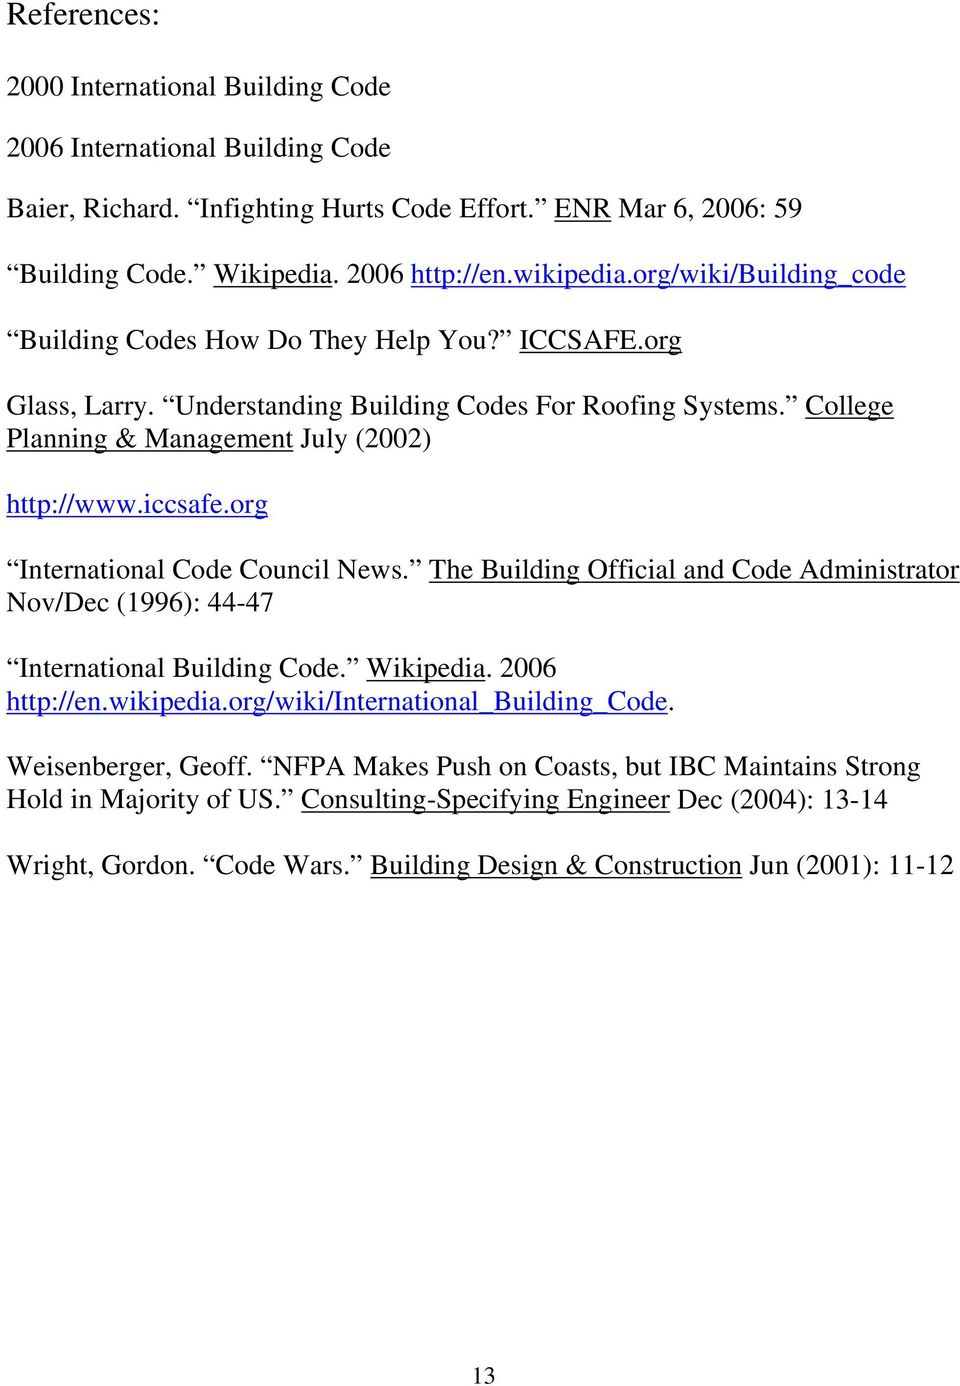 org International Code Council News. The Building Official and Code Administrator Nov/Dec (1996): 44-47 International Building Code. Wikipedia. 2006 http://en.wikipedia.